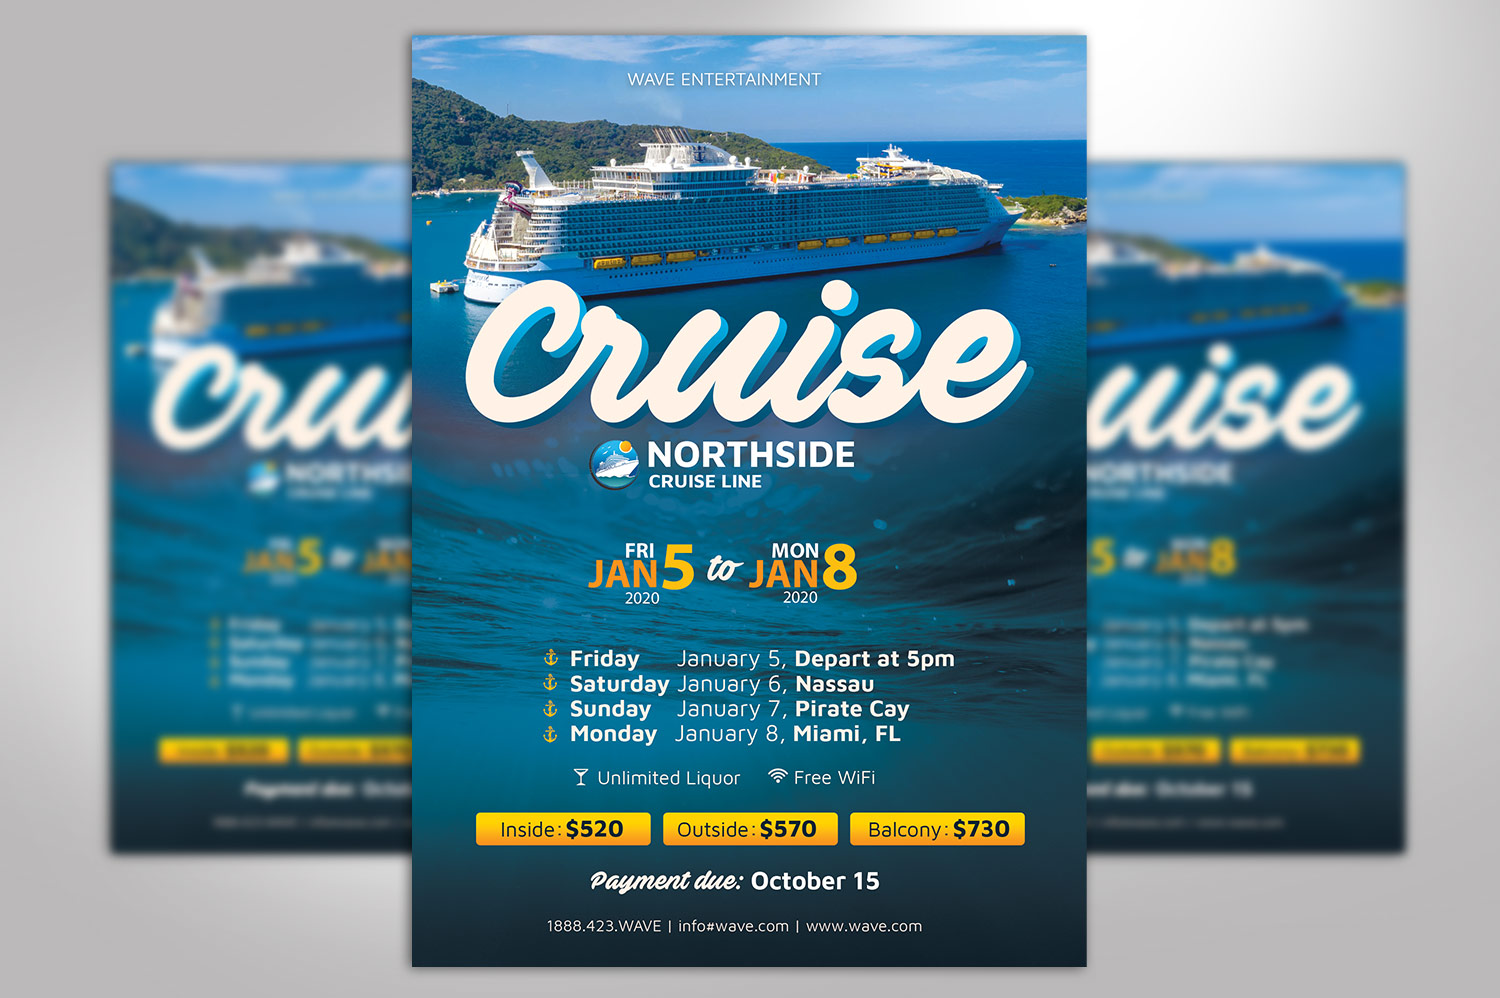 Cruise Travel Flyer Photoshop Template example image 2